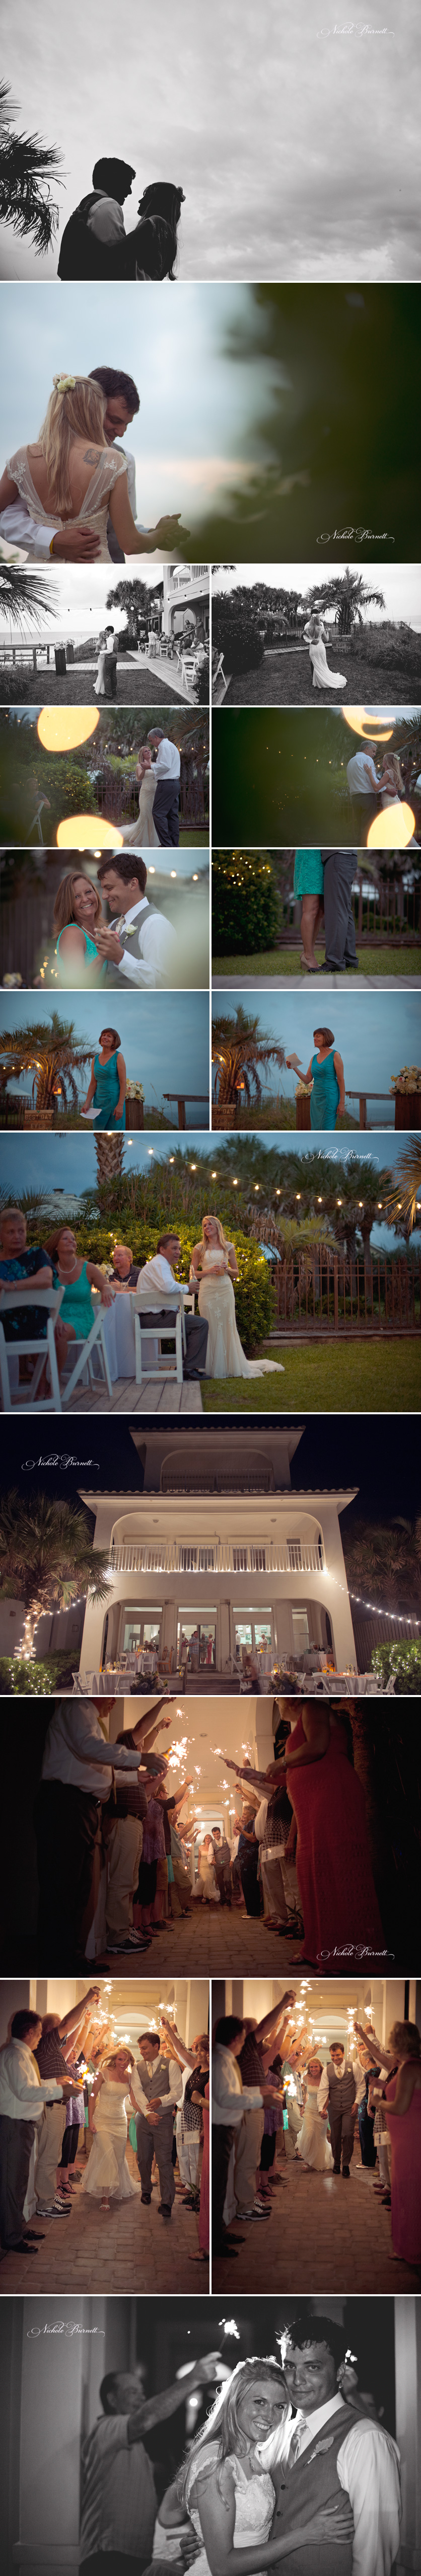 seagrove wedding photographers